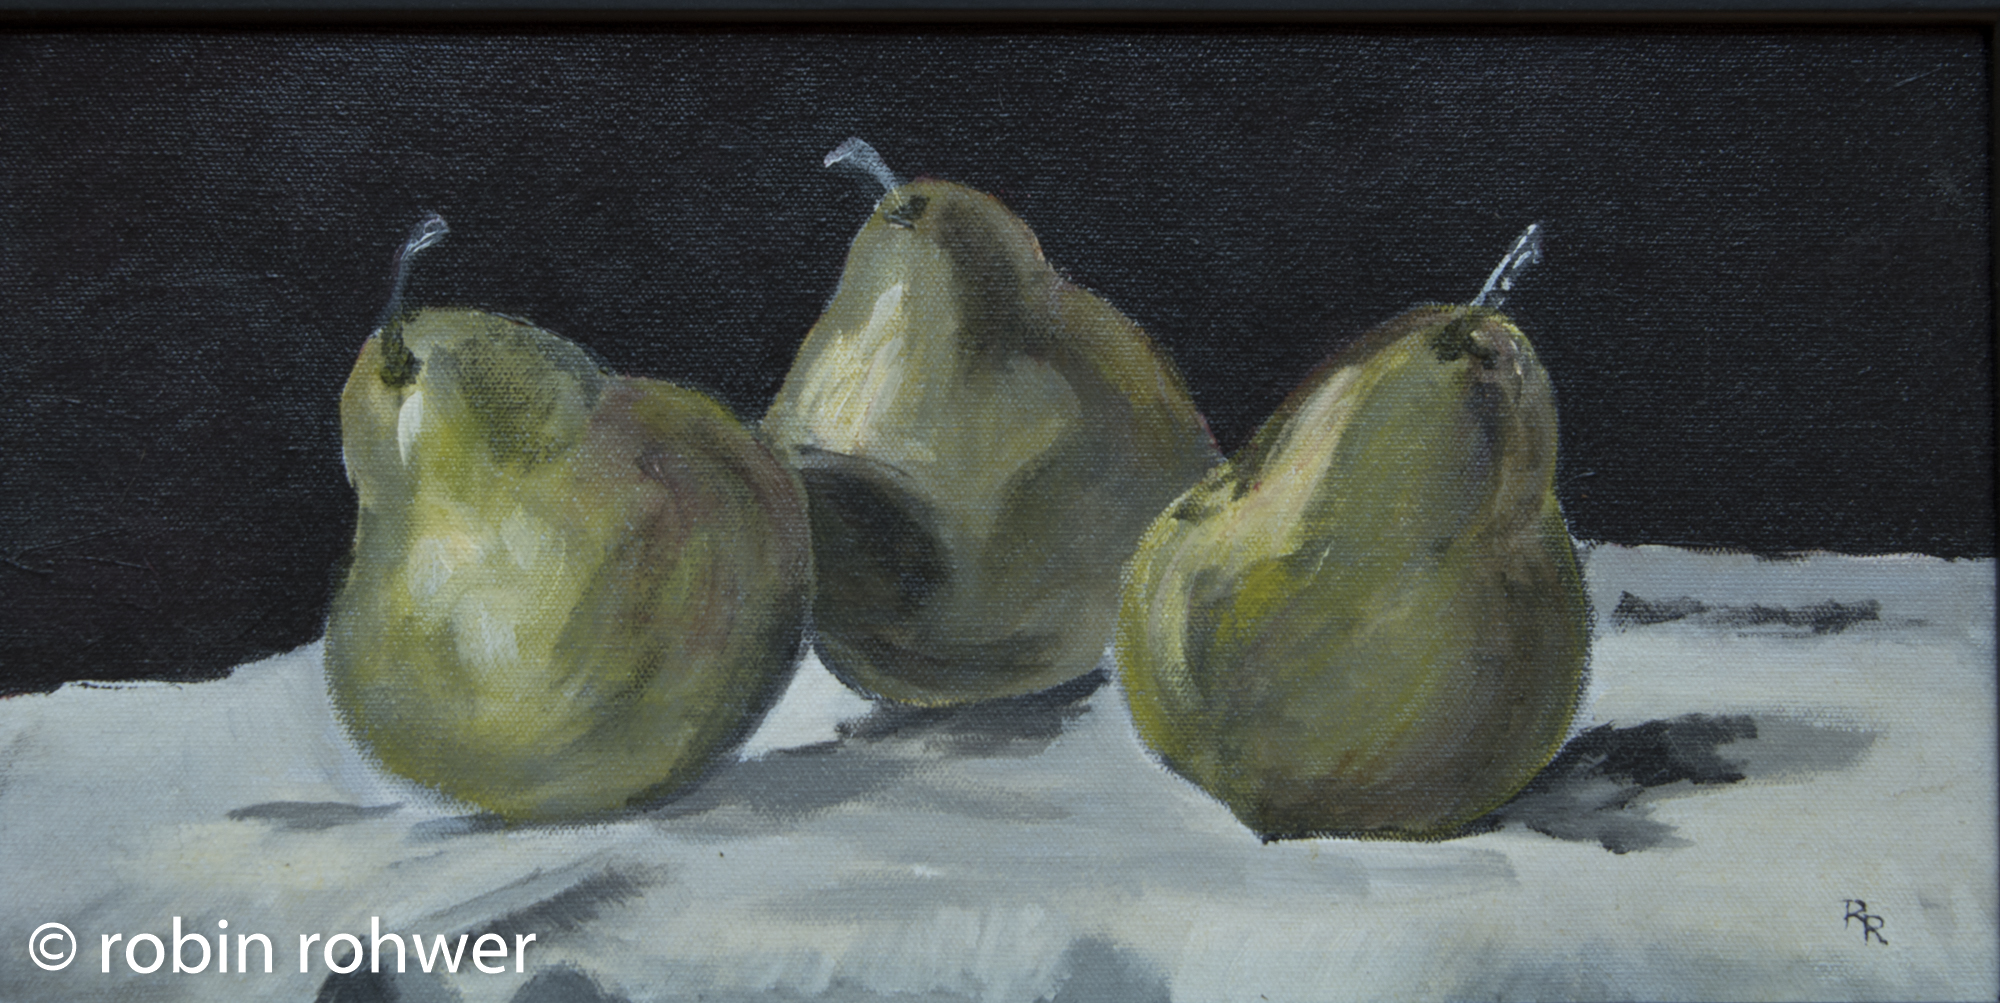 Three Glazed Pears-1.jpg